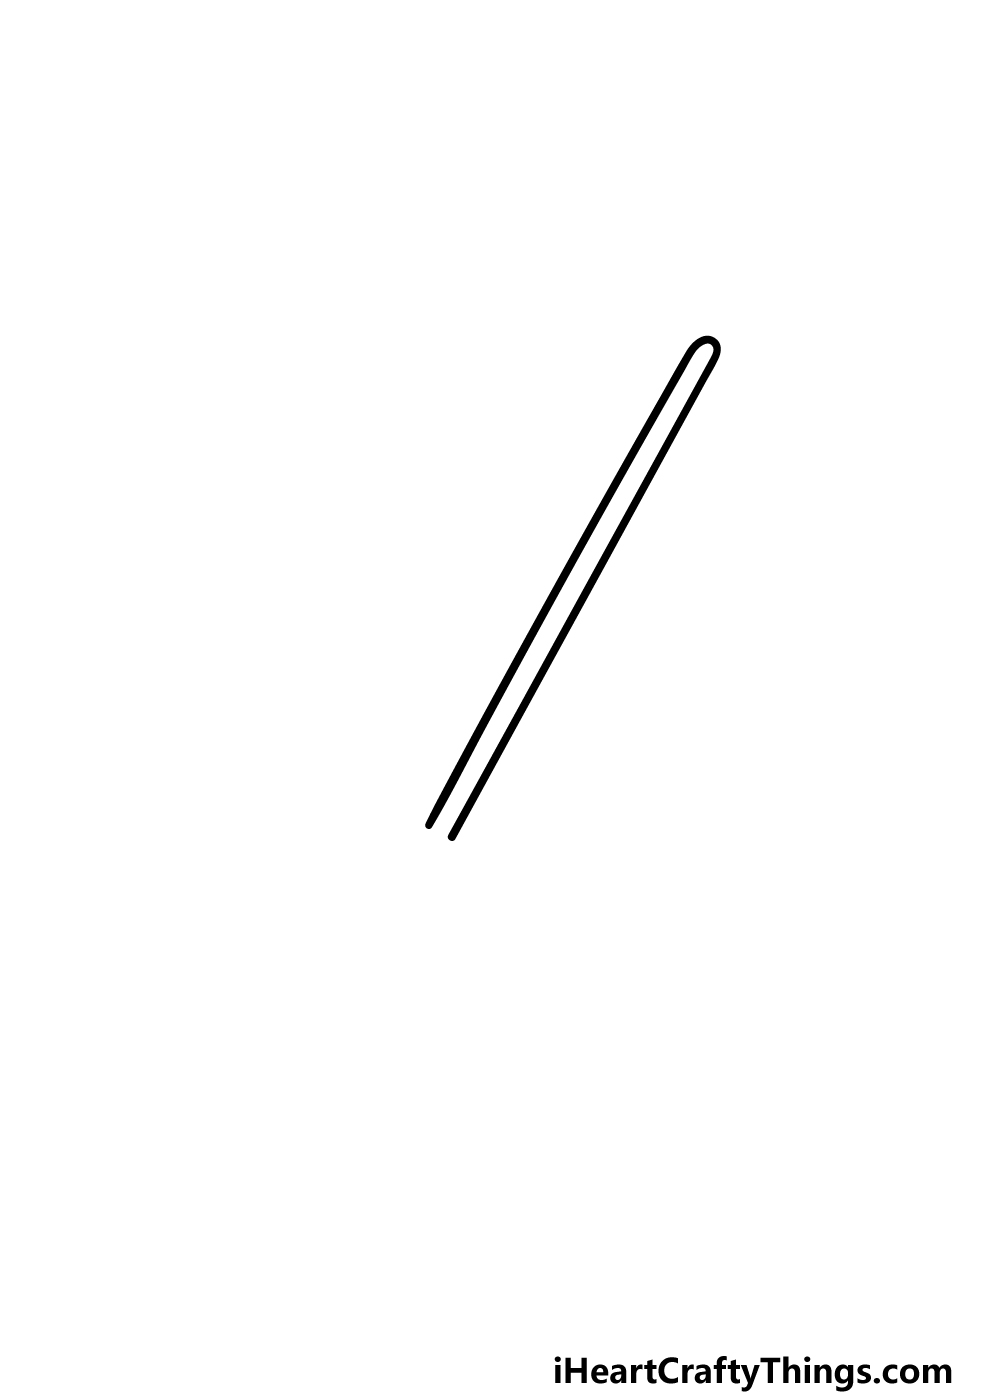 drawing a lightsaber step 1